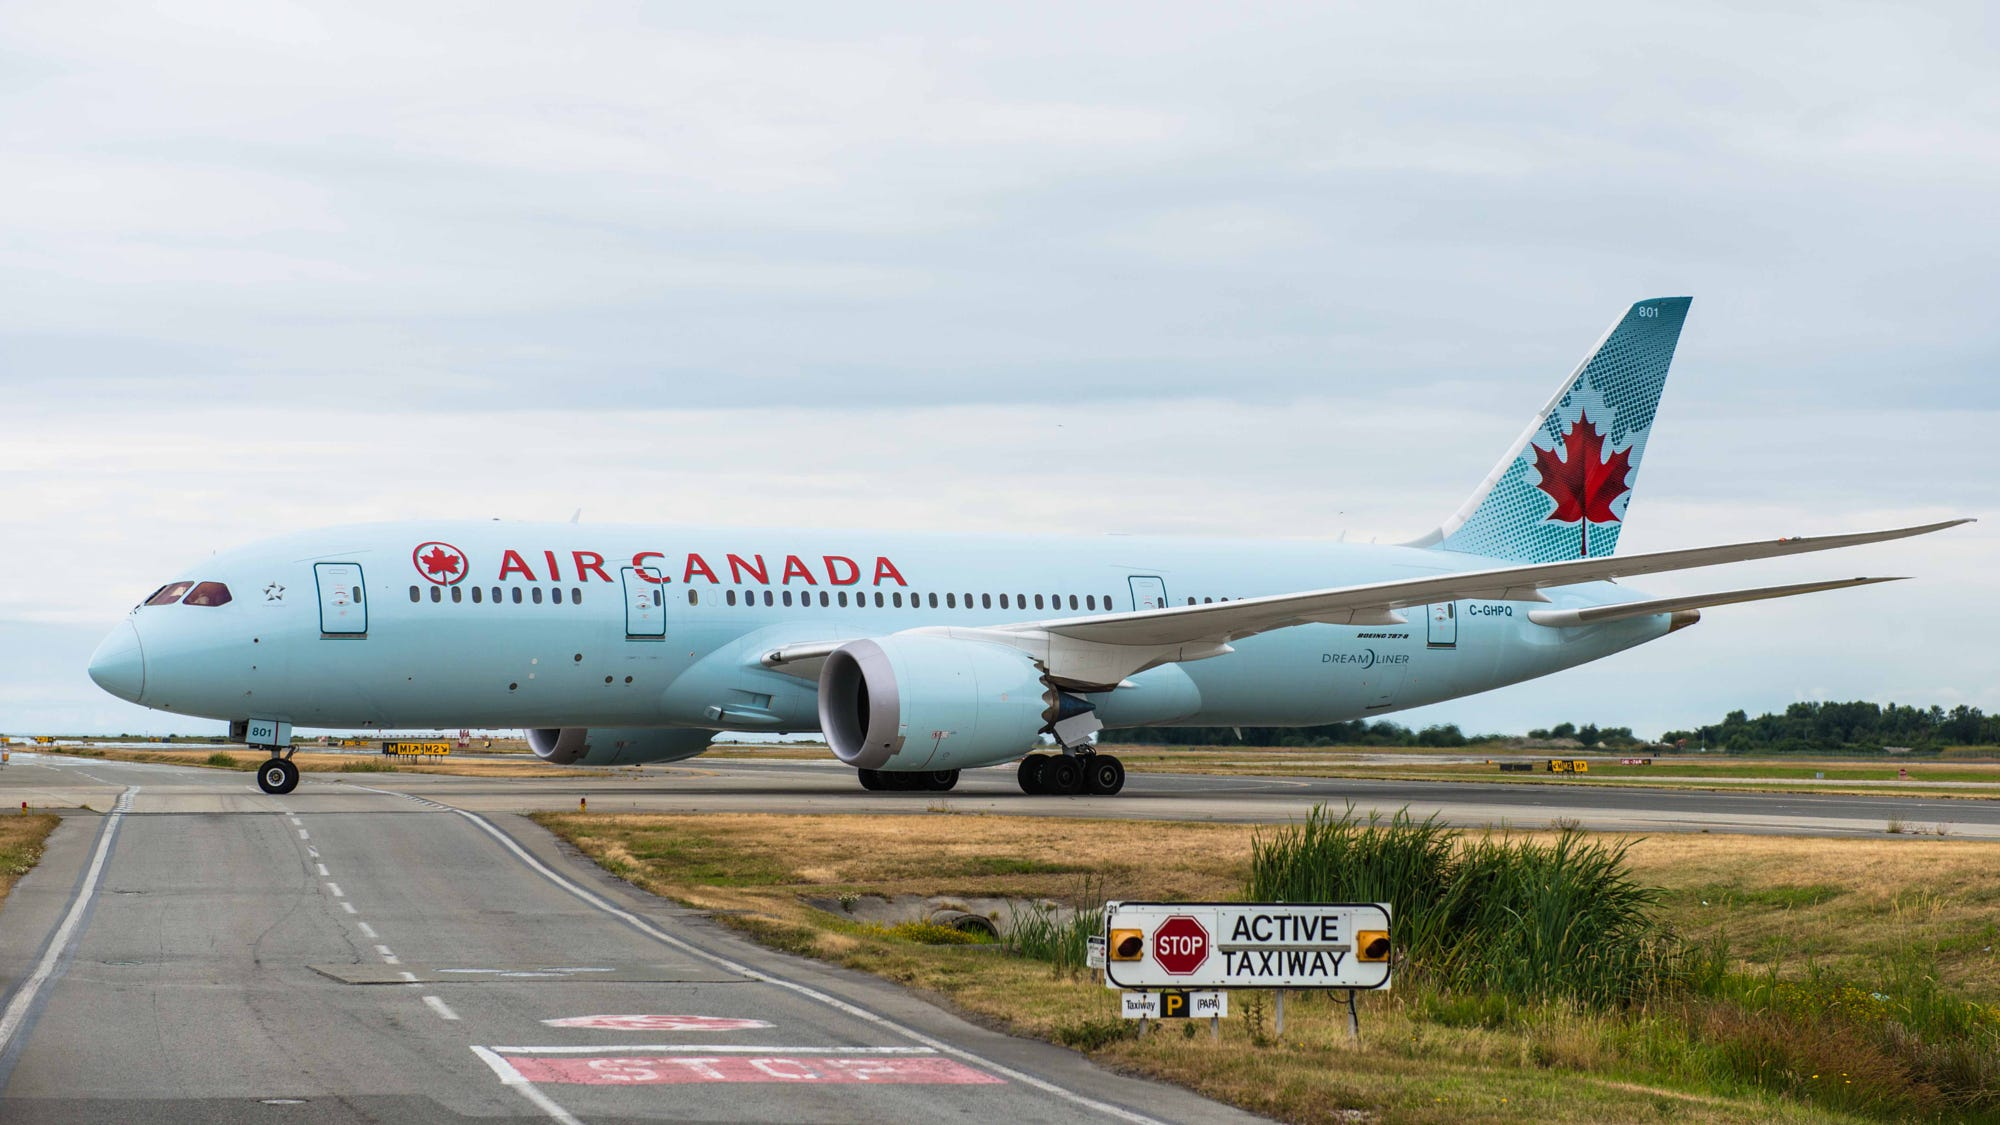 Le Bourget: Air Canada and AFI KLM E&M extends GE90 contract